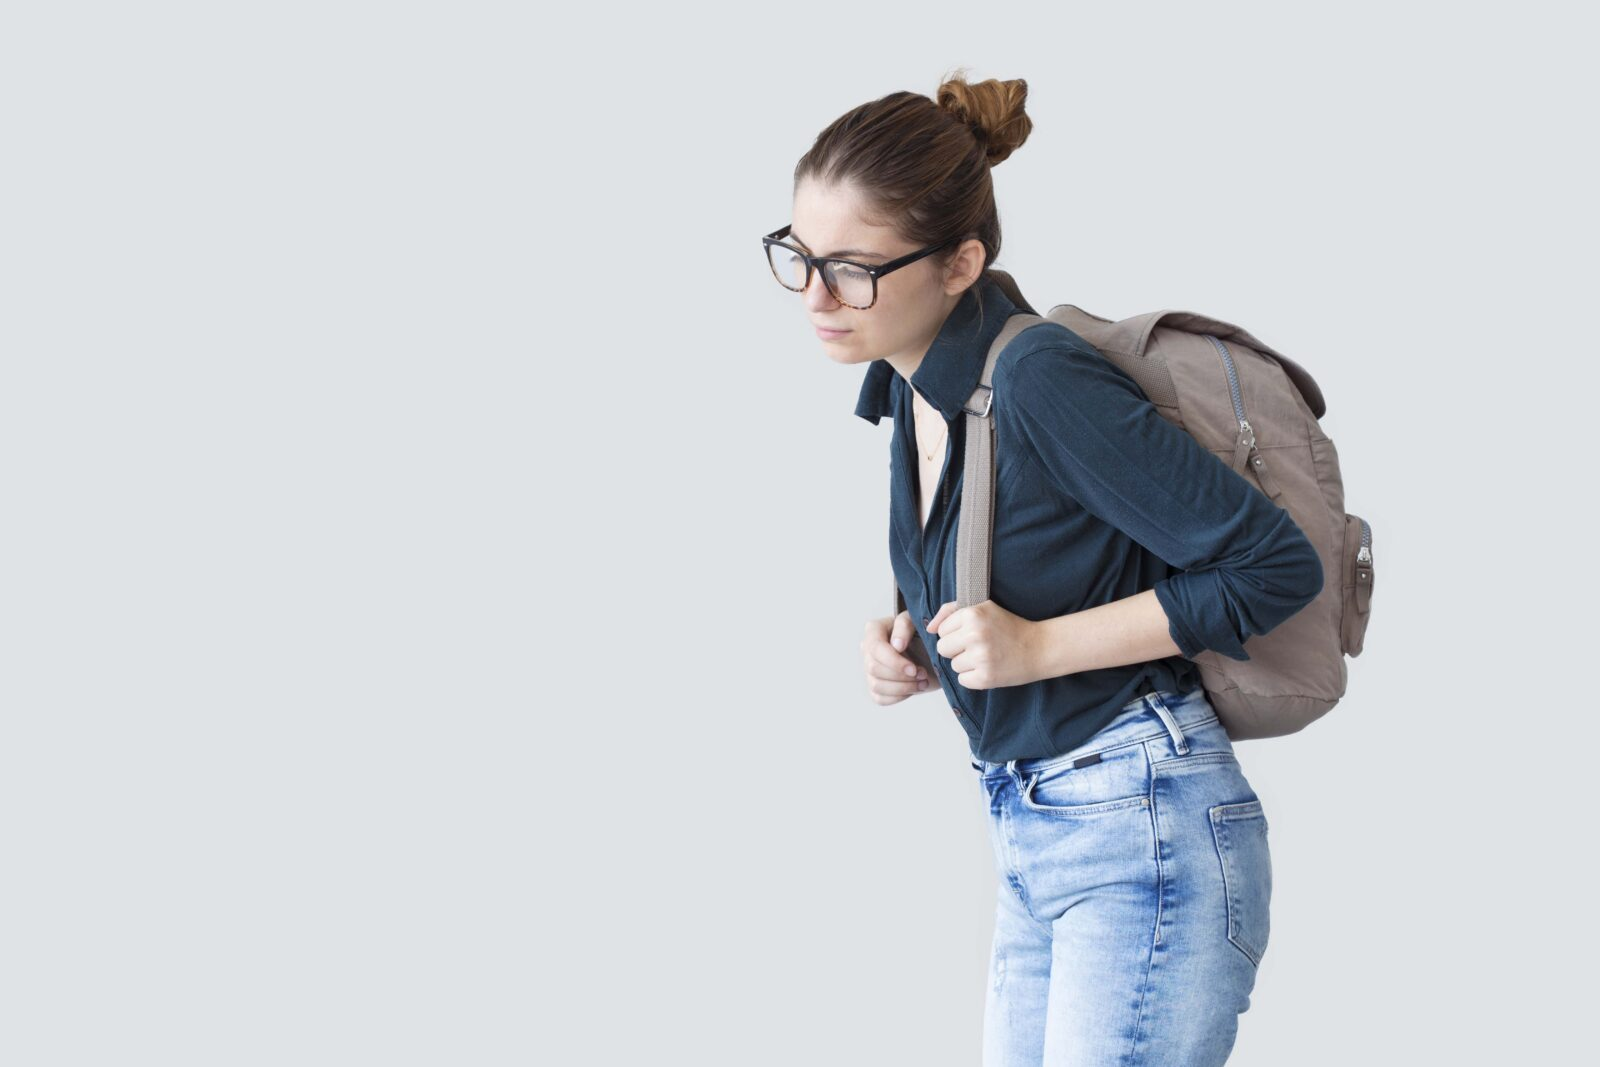 woman walking with large backpack